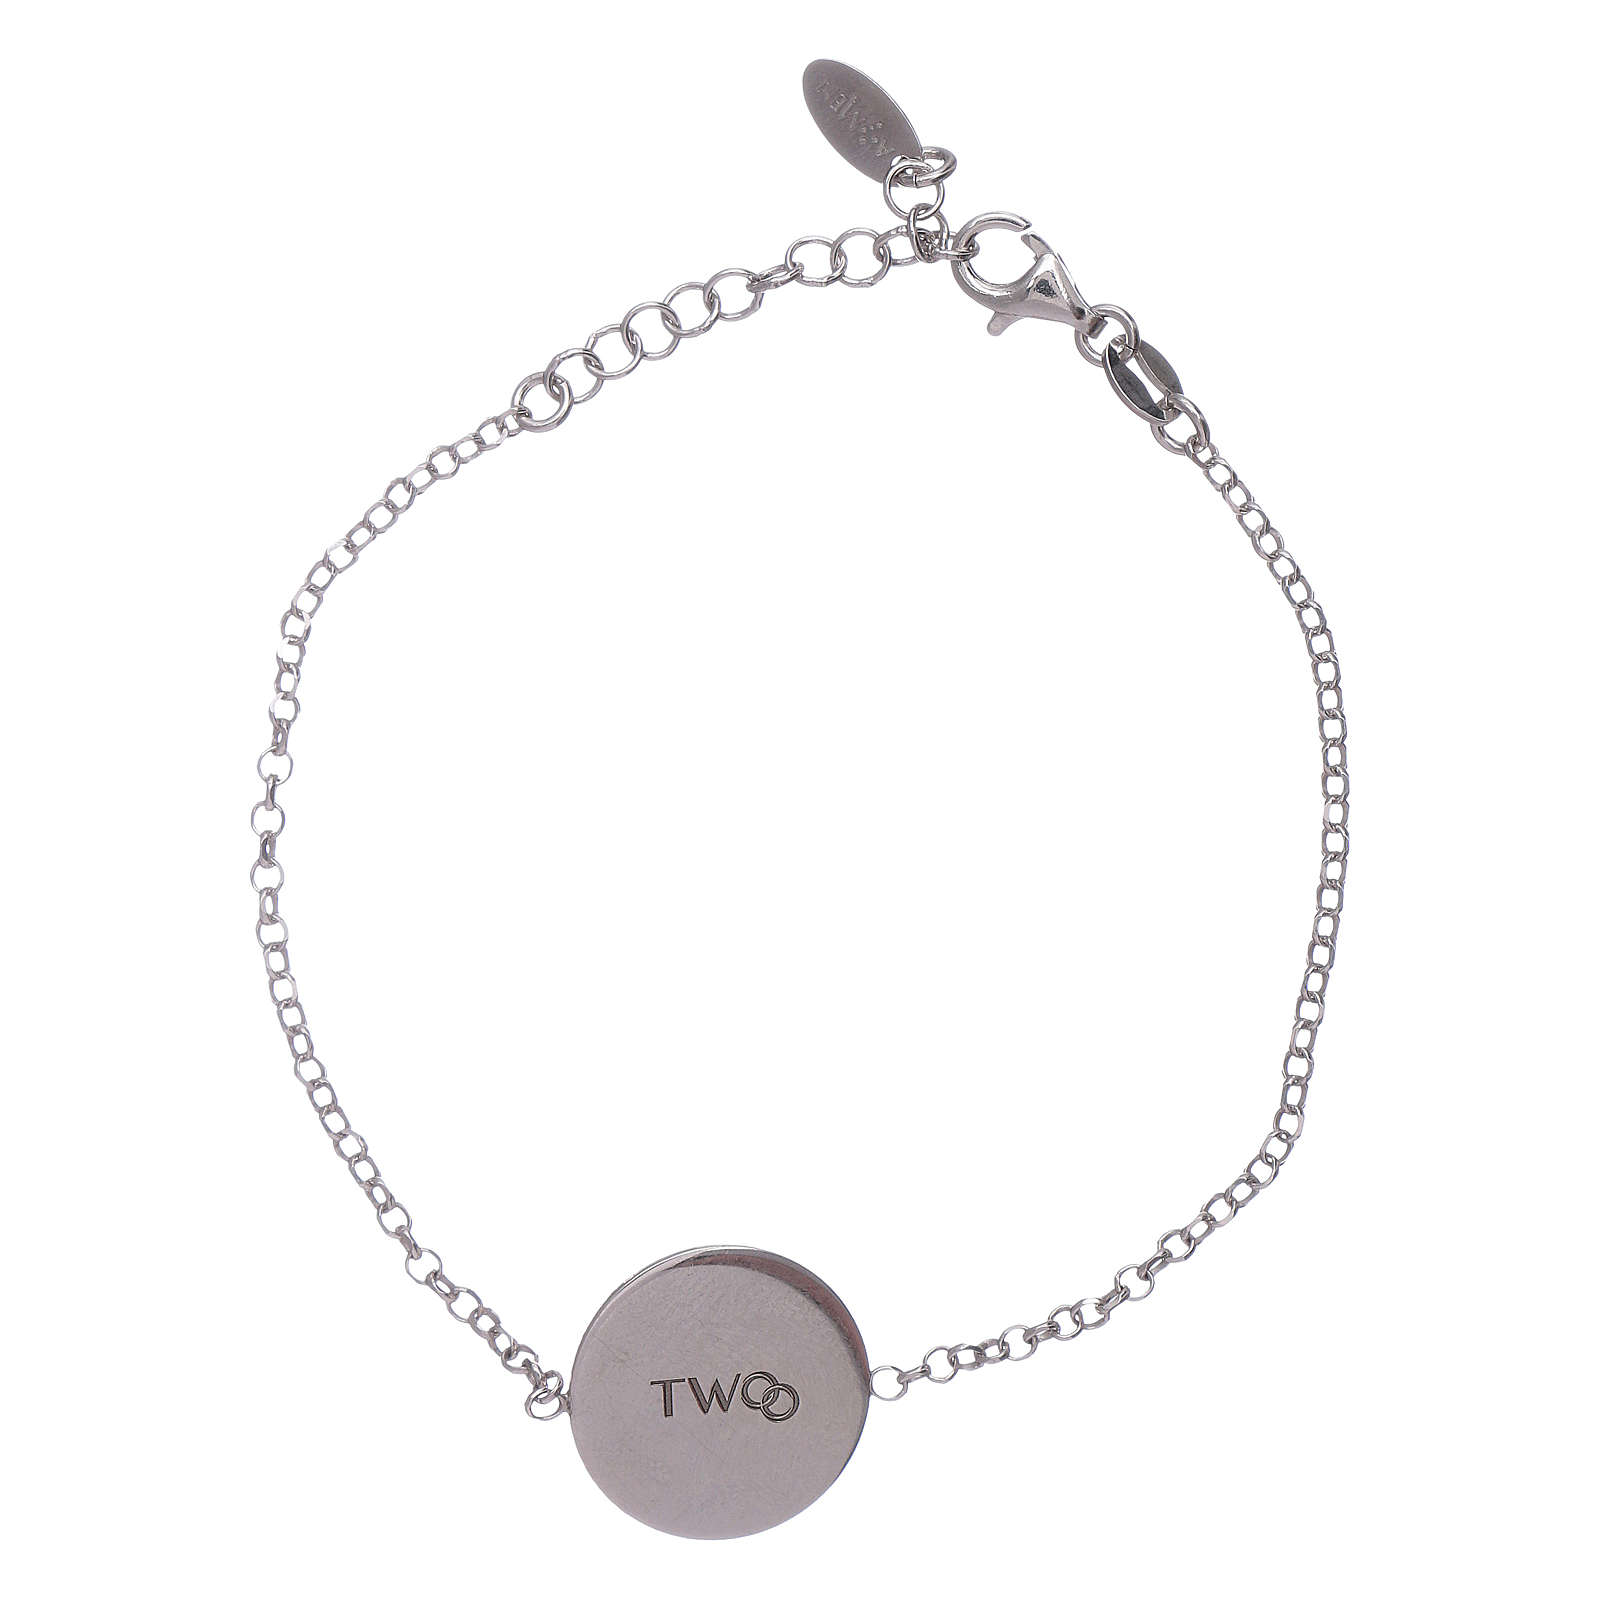 Bracciale donna AMEN arg 925 con messaggino romantico 4